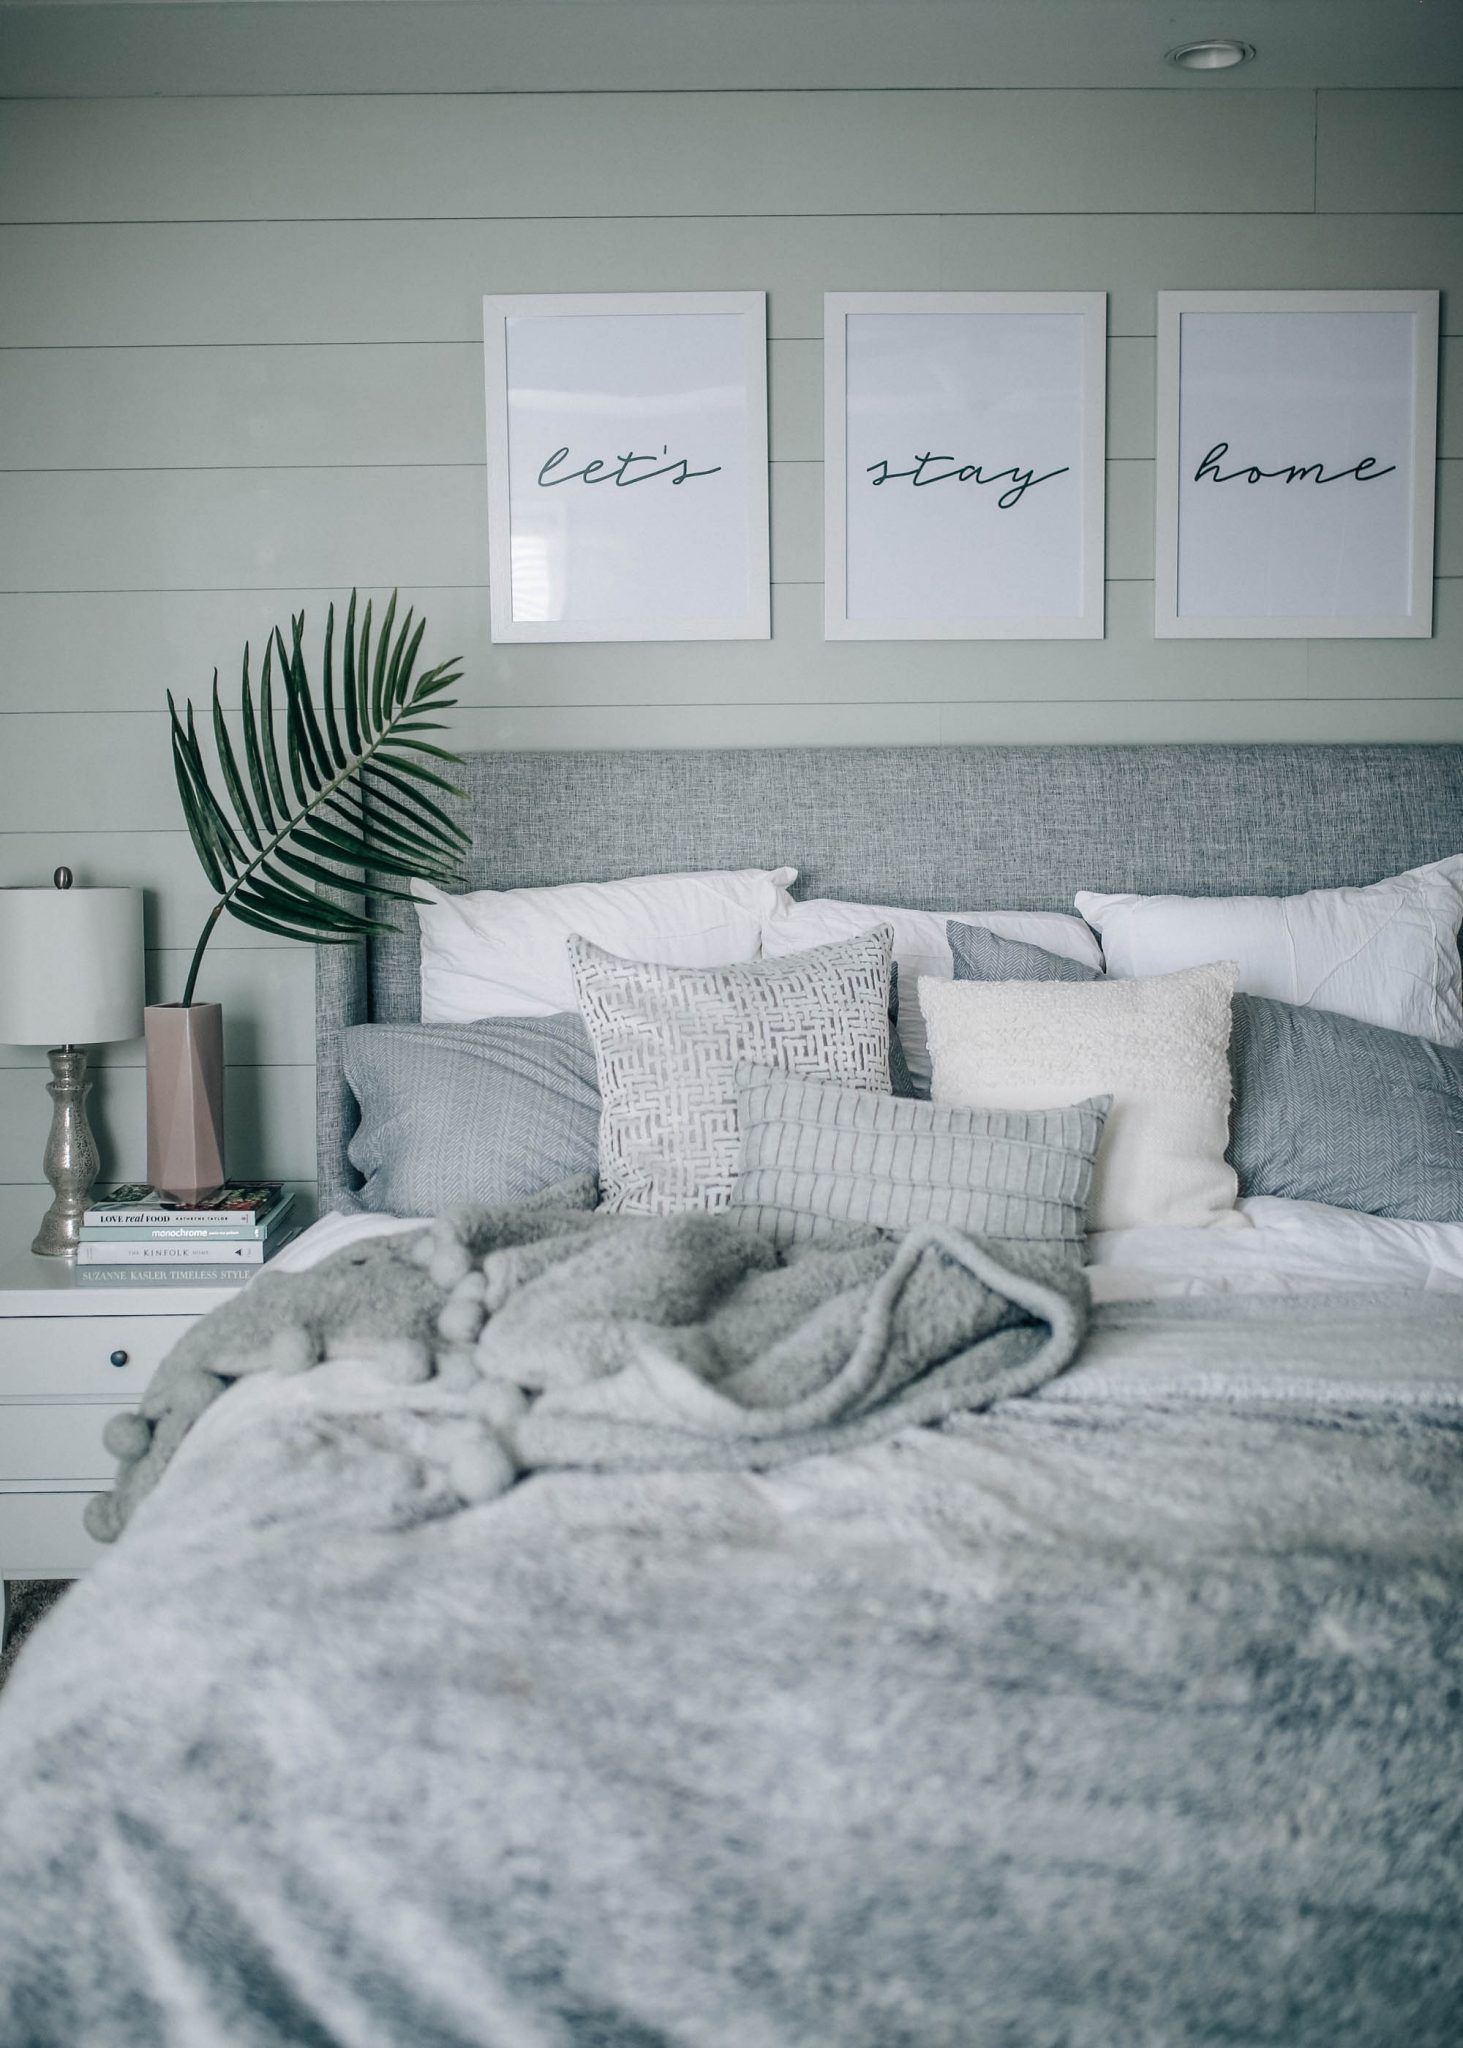 grey and white room on recent bedroom decor updates pretty in the pines lifestyle blog apartment bedroom design white bedroom decor shiplap bedroom recent bedroom decor updates pretty